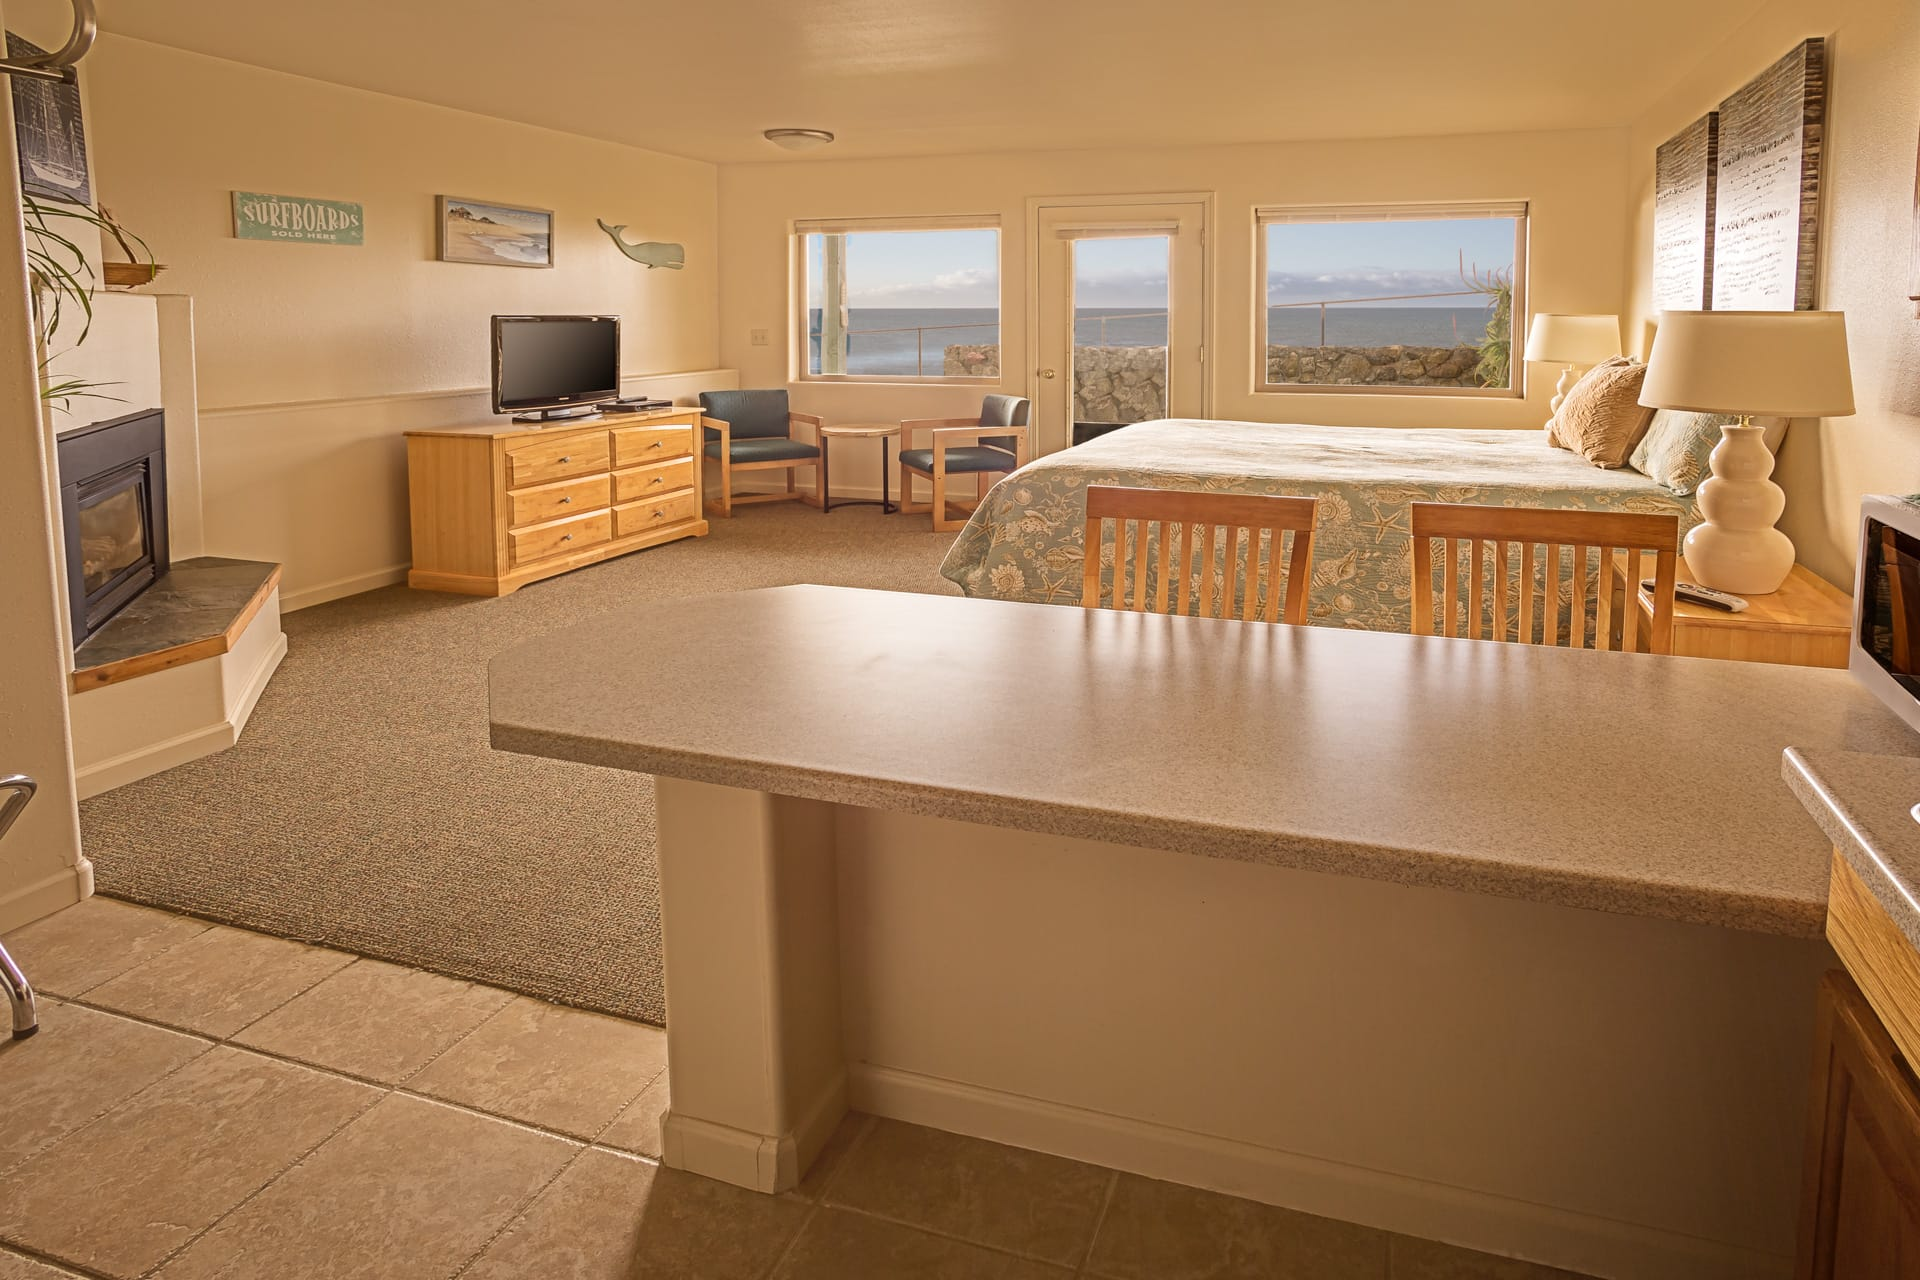 Extended stay oceanfront Kitchen Suite hotel room at Inn of the Lost Coast Shelter Cove, with King size bed, fireplace, HDTV flatscreen, and patio with panoramic view of Northern California Pacific Ocean coastline.